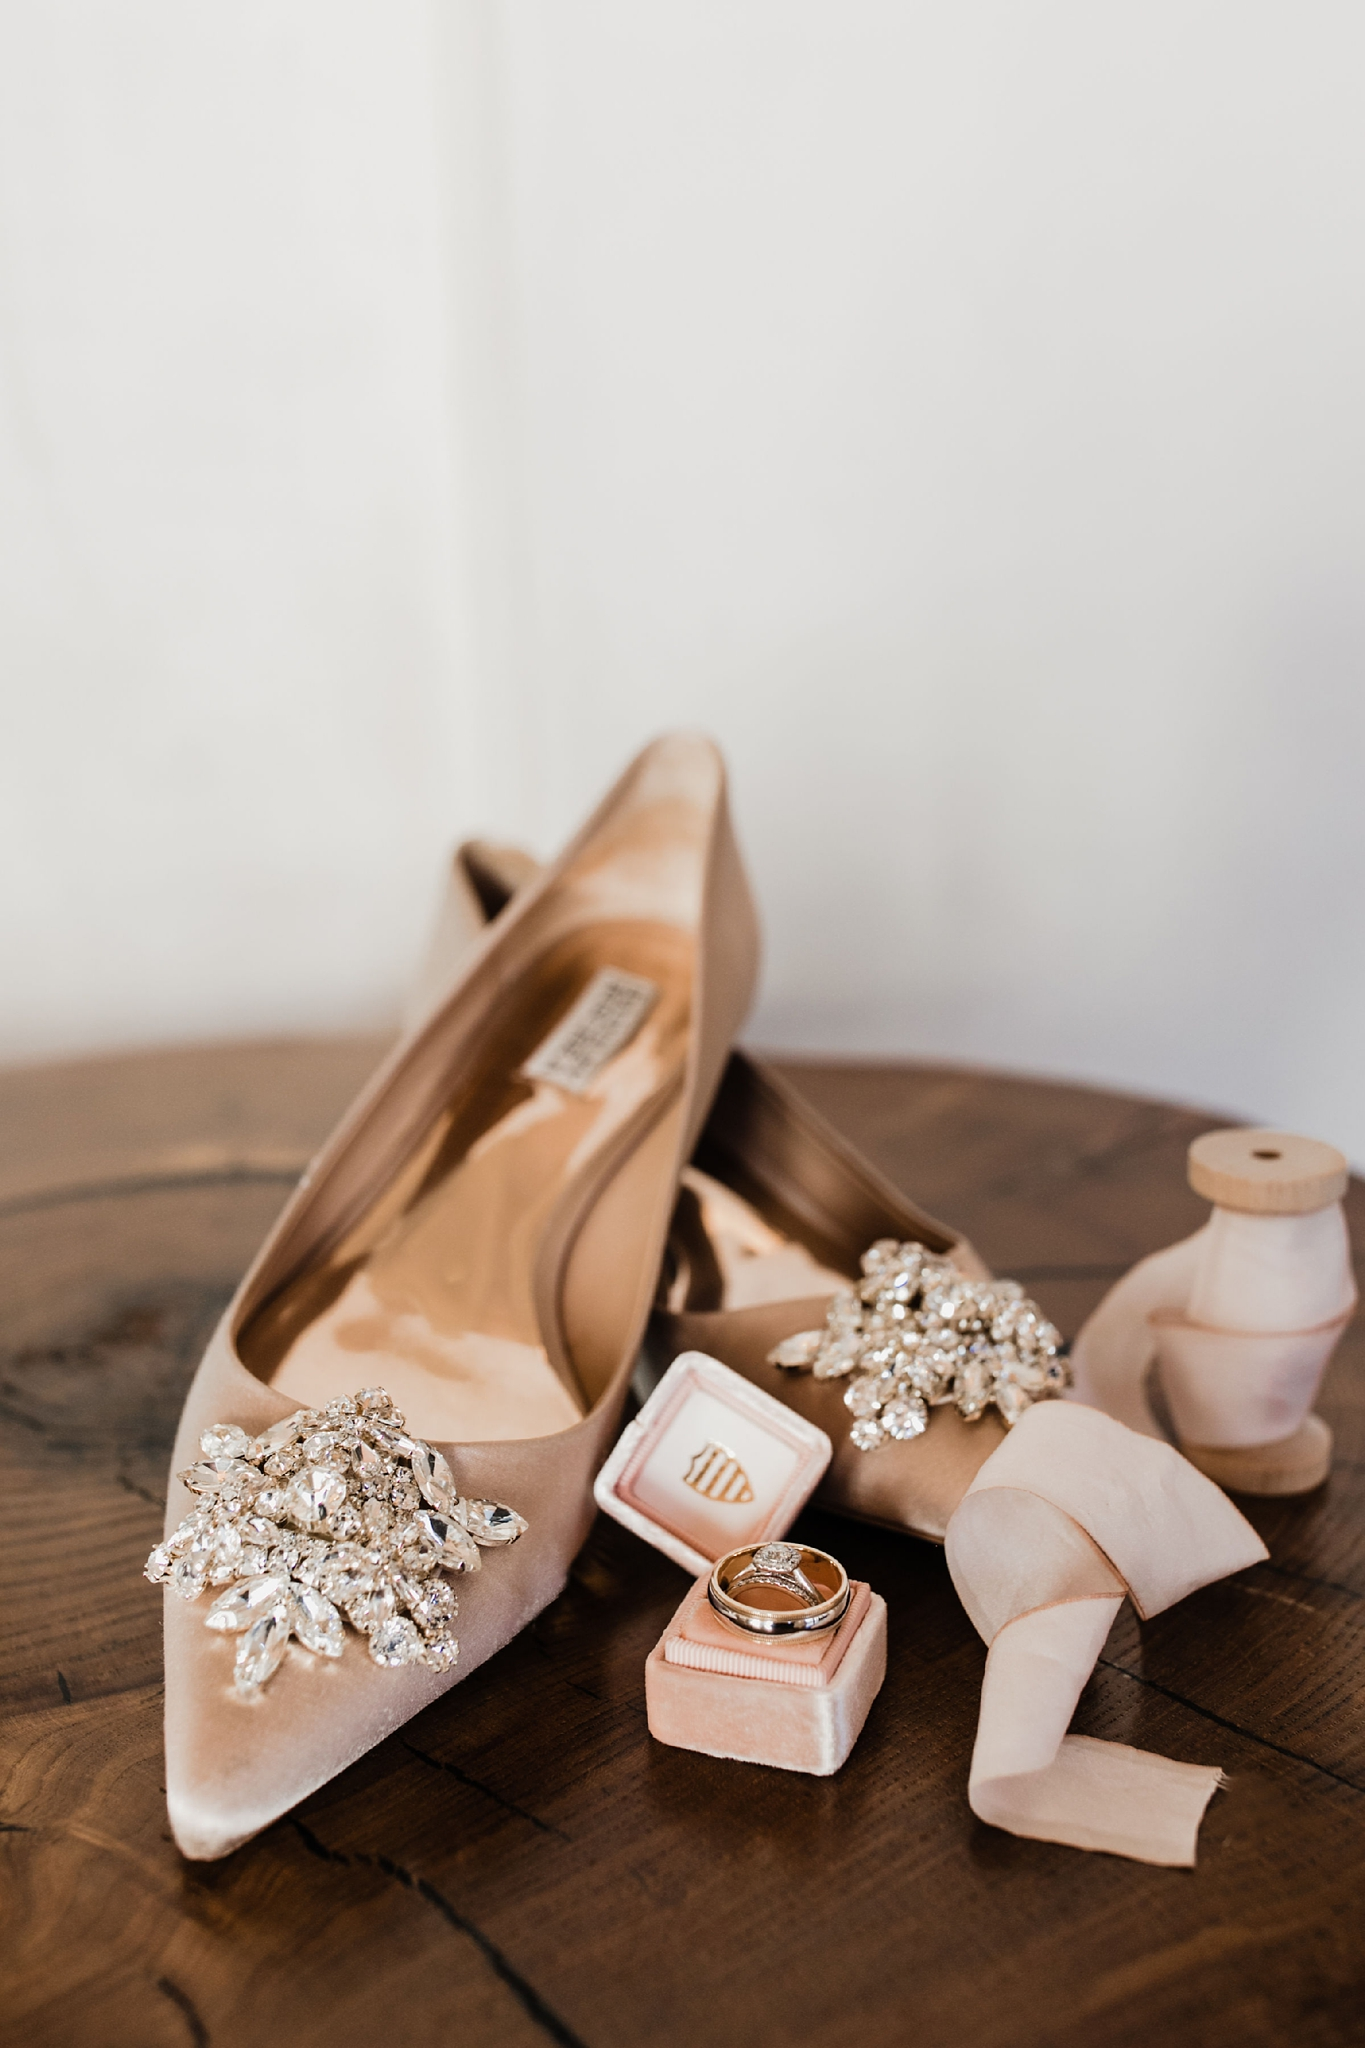 Alicia+lucia+photography+-+albuquerque+wedding+photographer+-+santa+fe+wedding+photography+-+new+mexico+wedding+photographer+-+new+mexico+wedding+-+new+mexico+wedding+-+colorado+wedding+-+bridal+shoes+-+bridal+inspo_0040.jpg